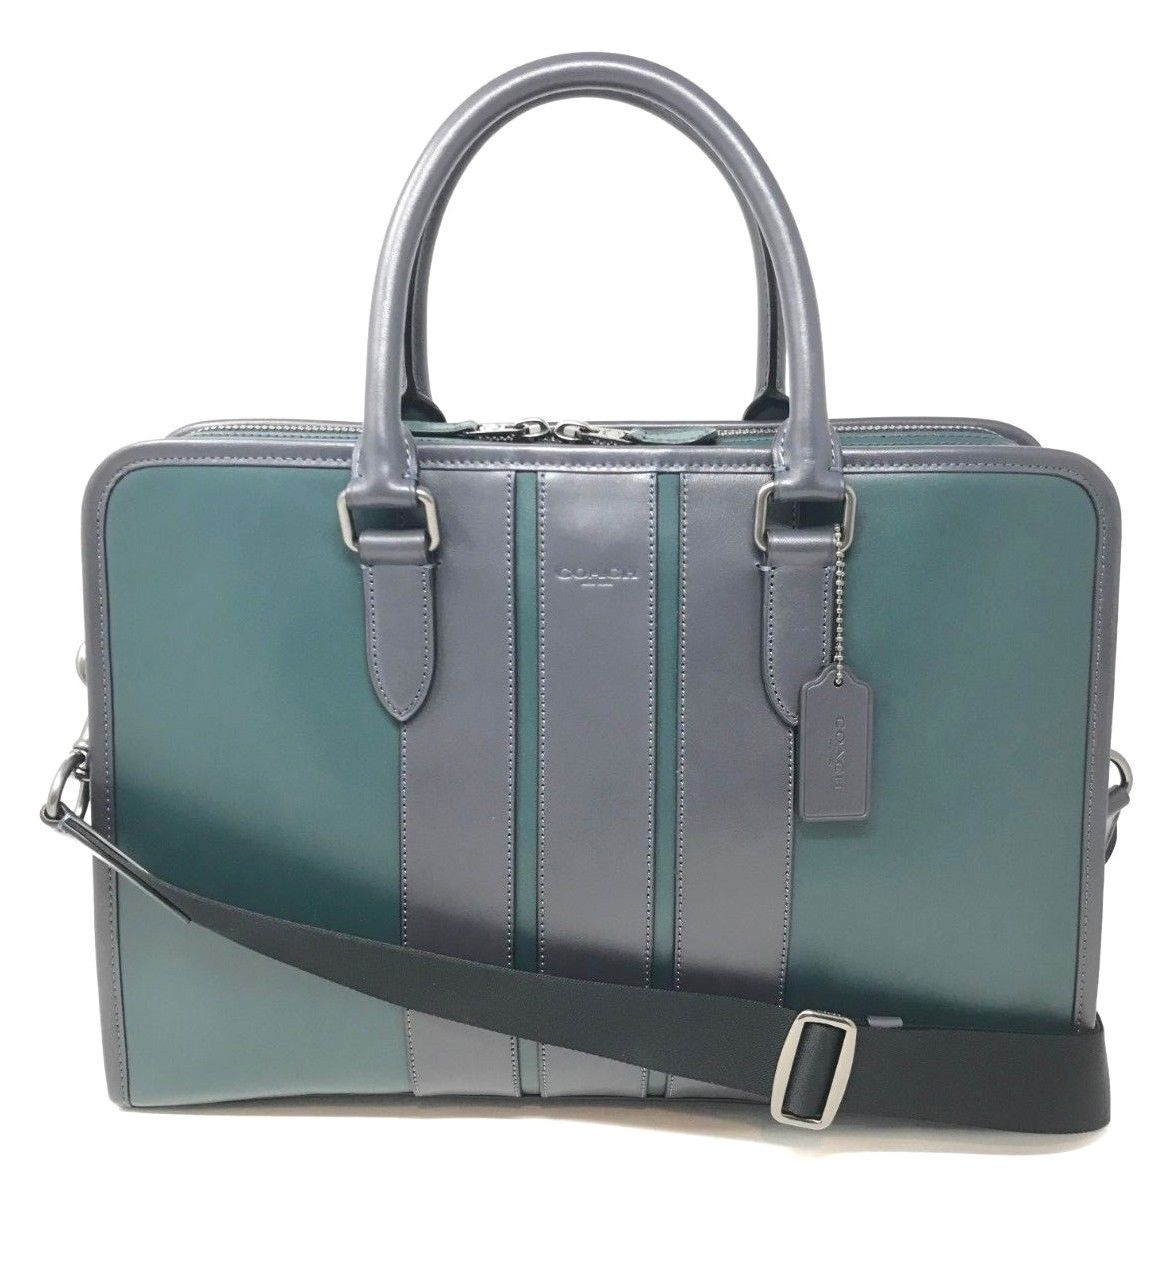 Coach Men's Bond Briefcase Bag In Forest Green Smooth Leather F35430 $595